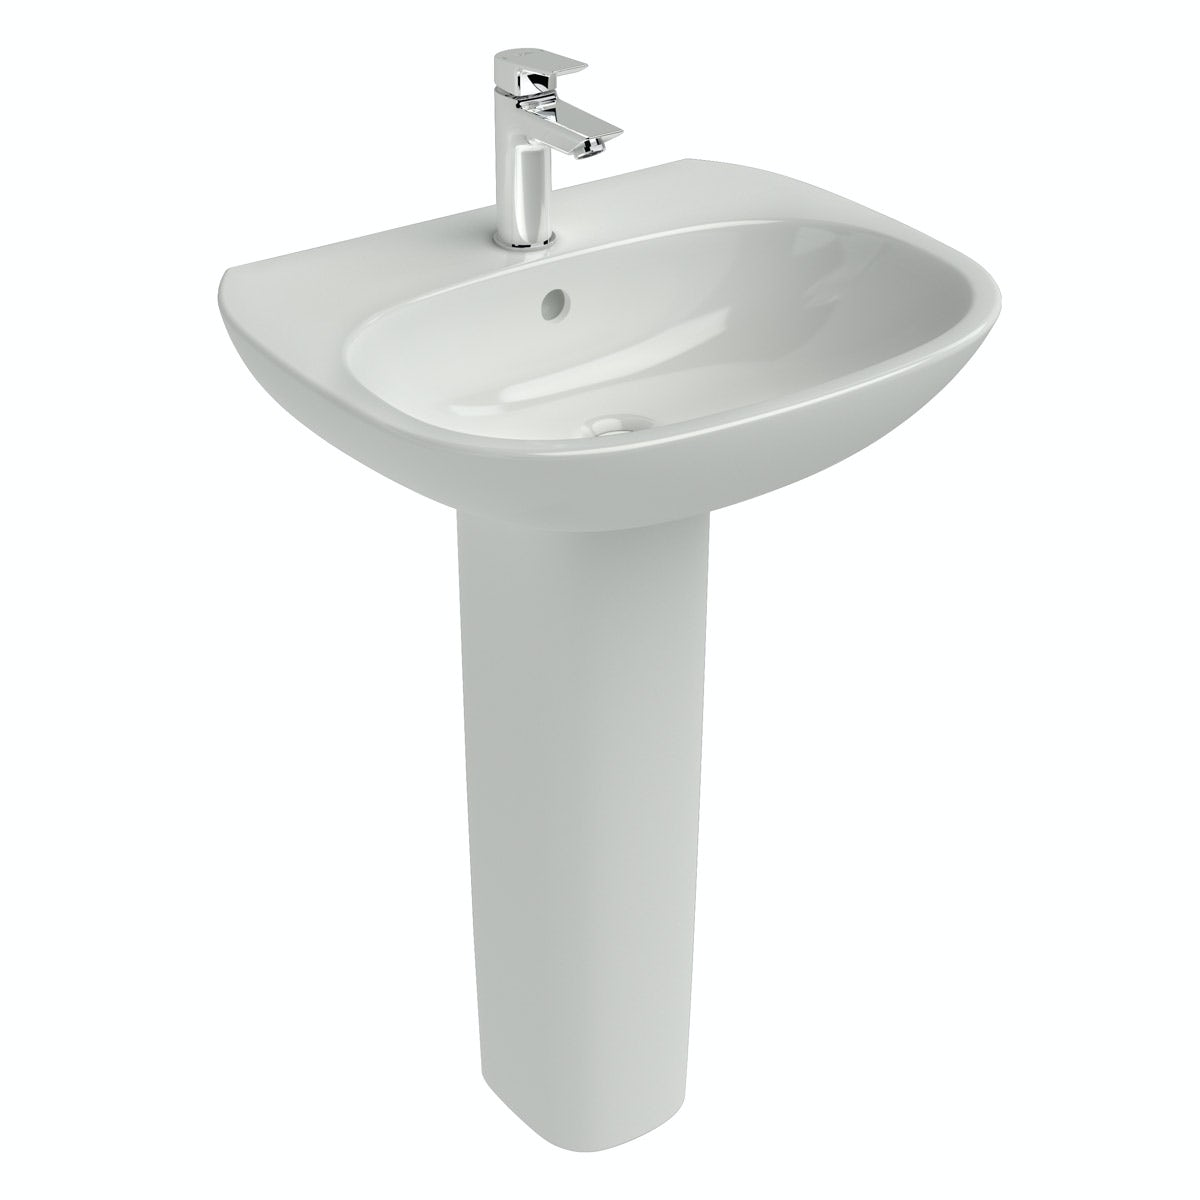 Ideal Standard Tesi 1 tap hole full pedestal basin 550mm